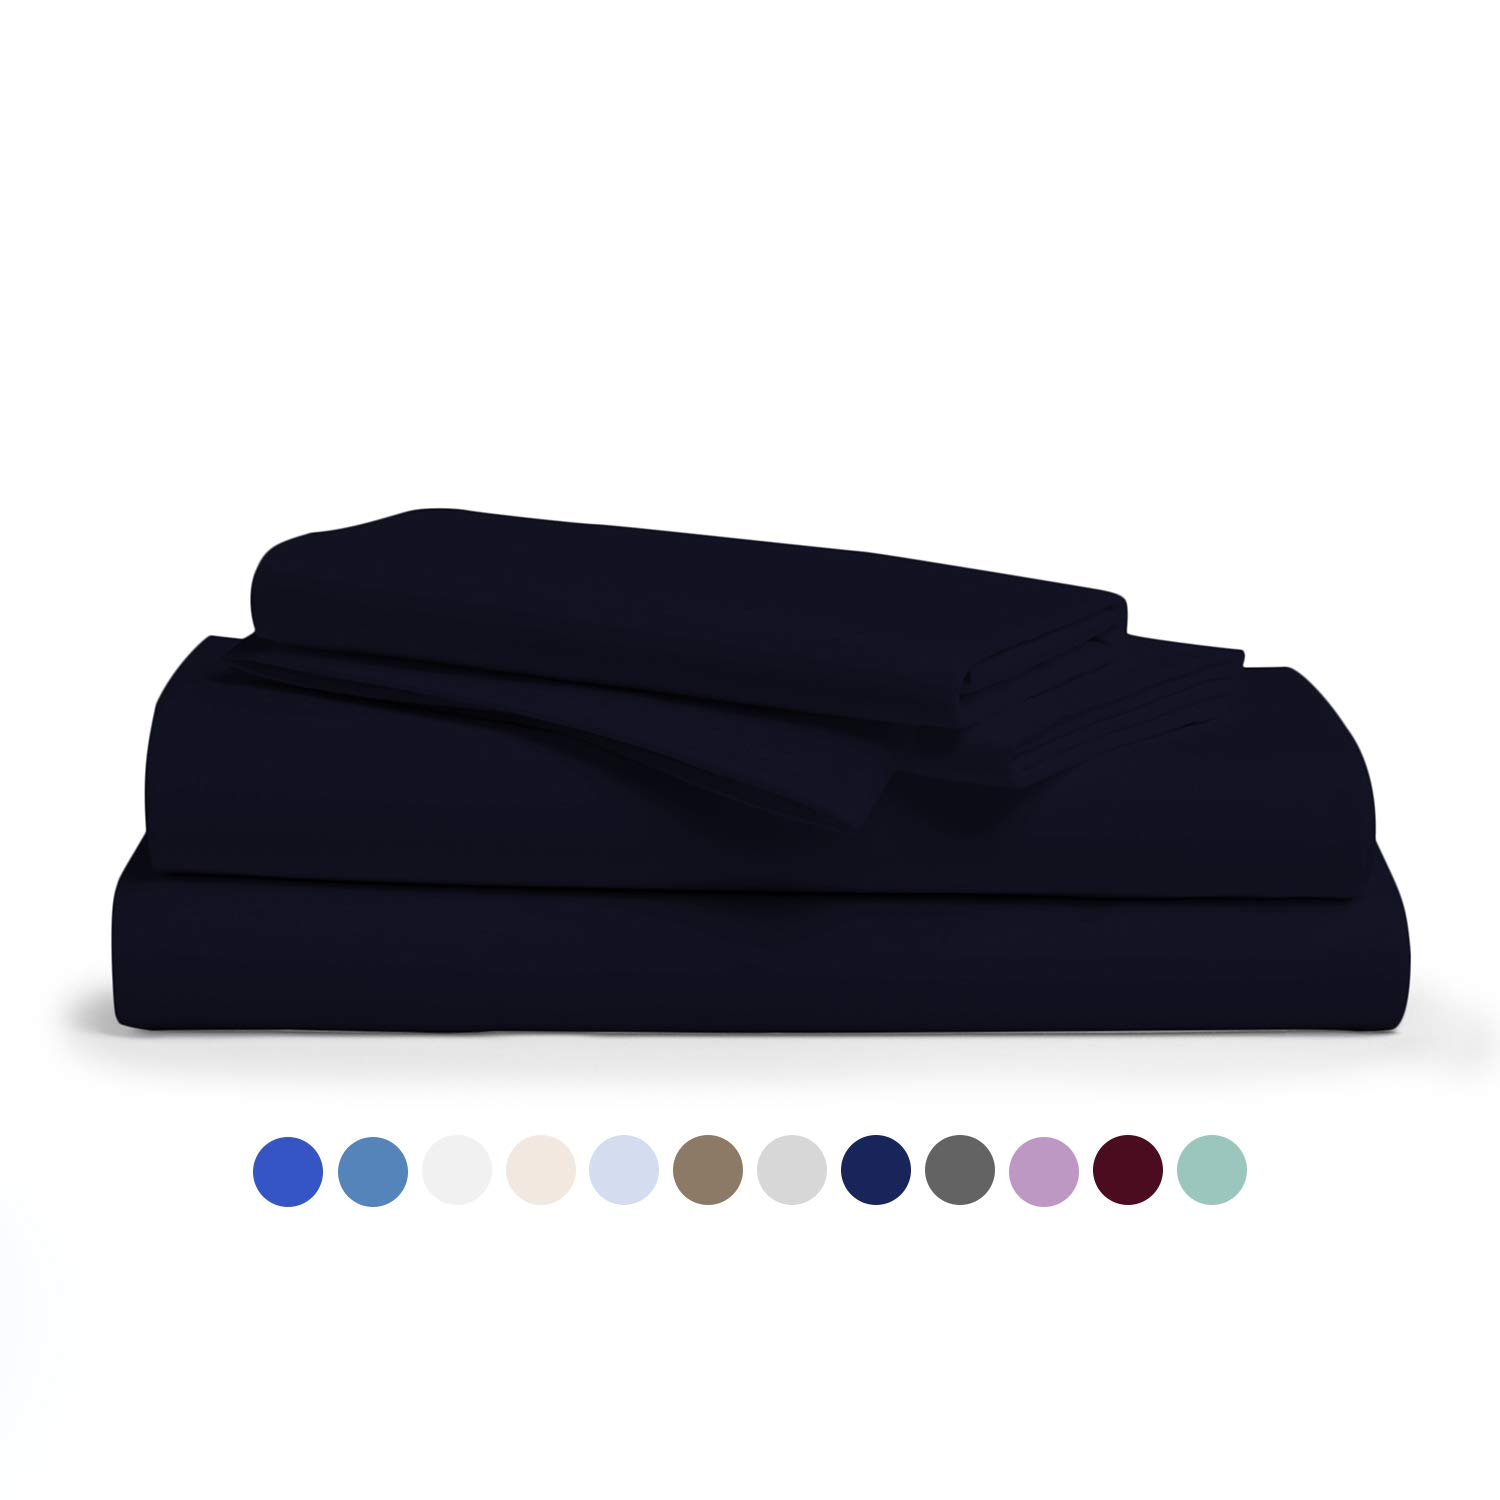 Comfy Sheets 100% Egyptian Cotton Sheets - 1000 Thread Count 4 Pc King Navy Blue Bed Sheet with Pillowcases,Hotel Quality Fits Mattress Up to 18'' Deep Pocket. by Comfy Sheets